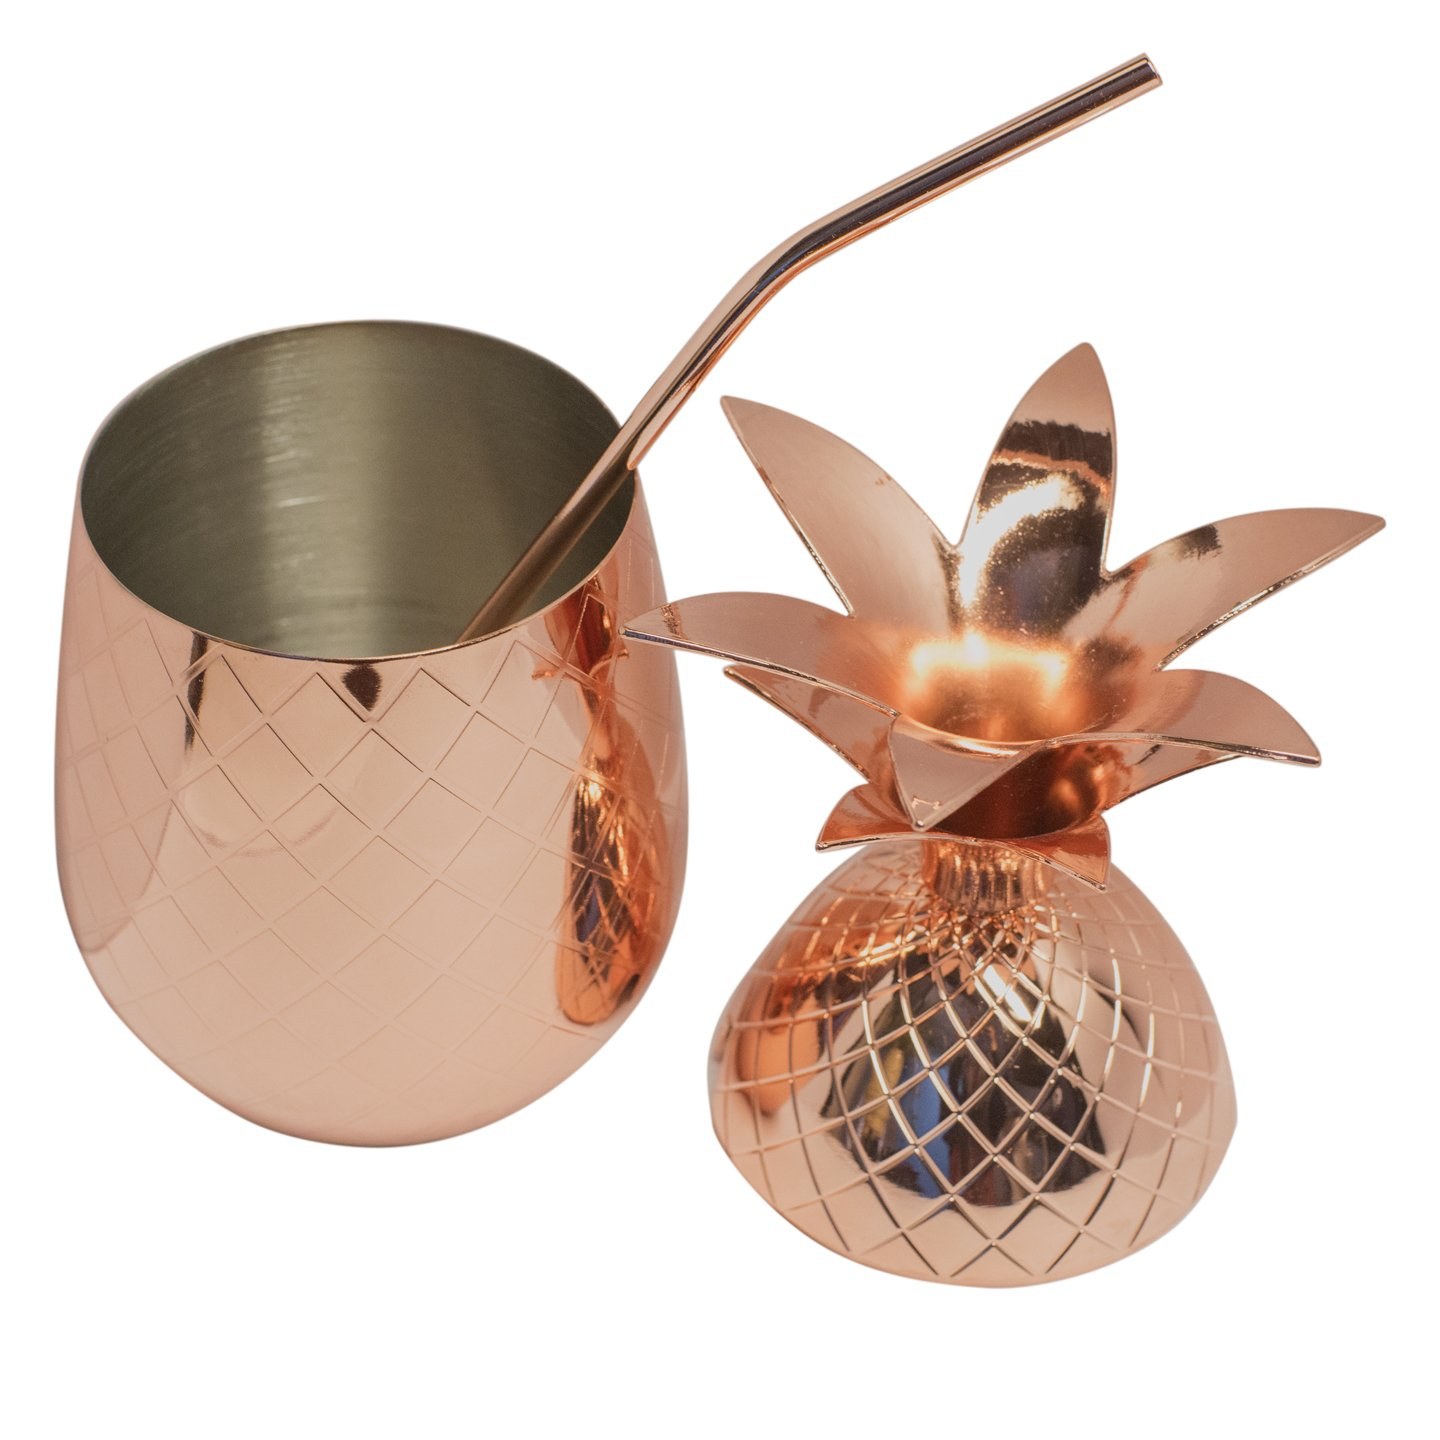 BonBon Copper Pineapple Cup 2-Pack Tumbler With Copper Straw, 17 OZ (Set of 2)